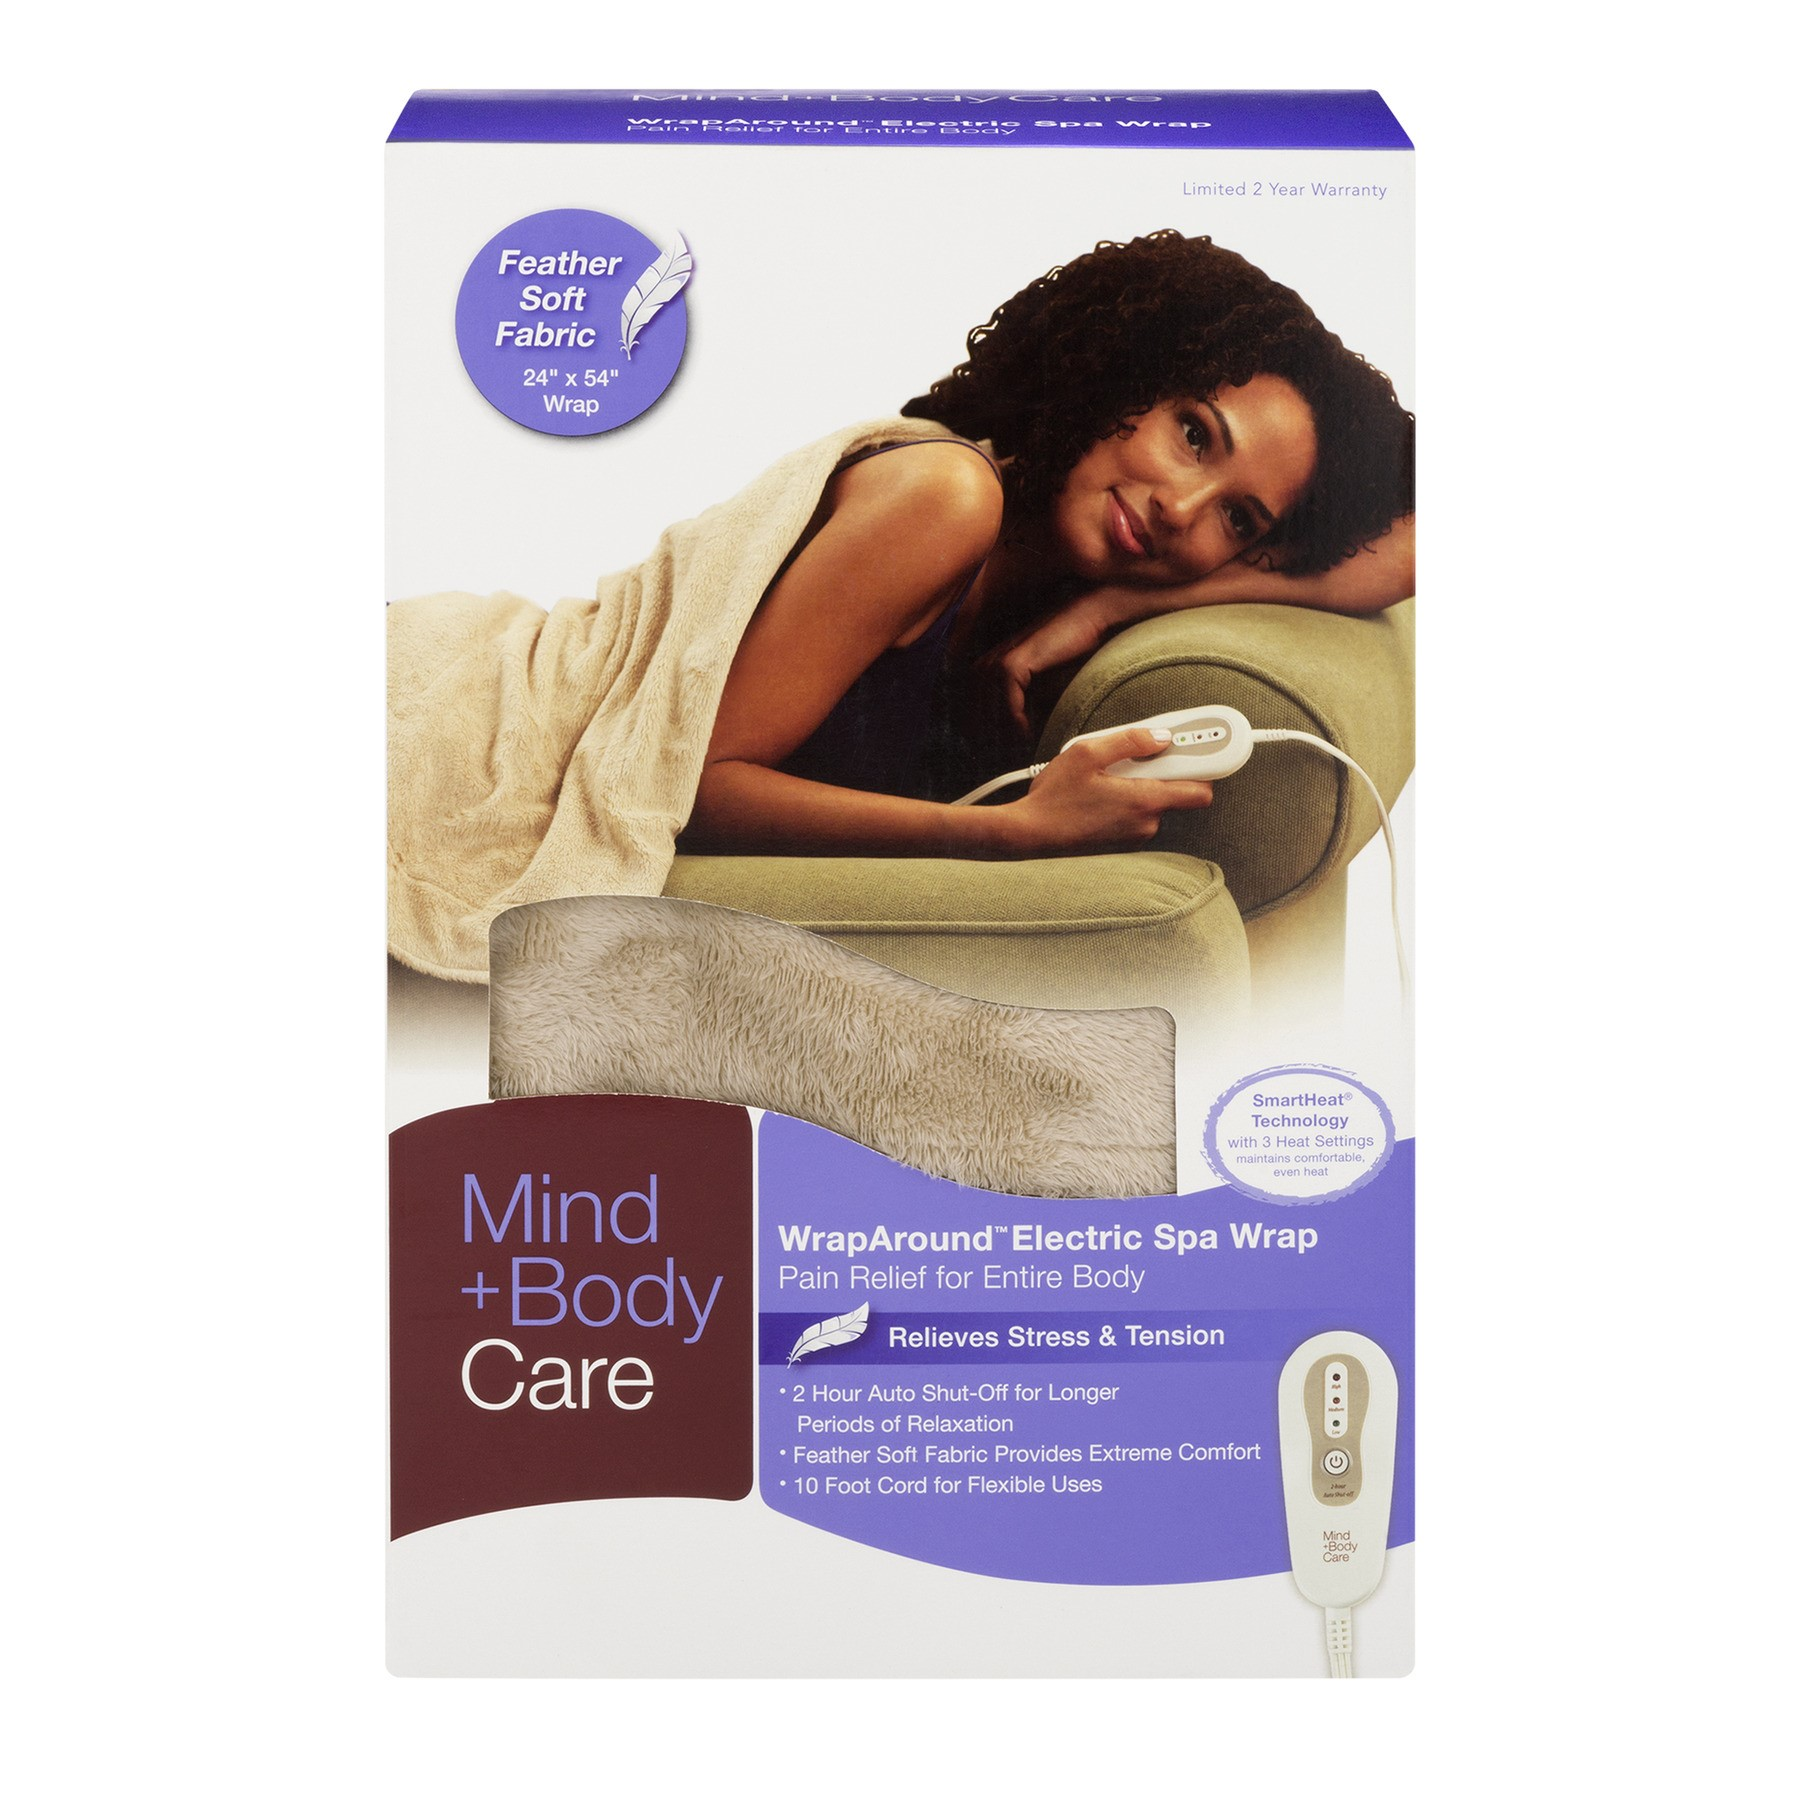 Mind+Body Care WrapAround Electric Spa Wrap, 1.0 CT